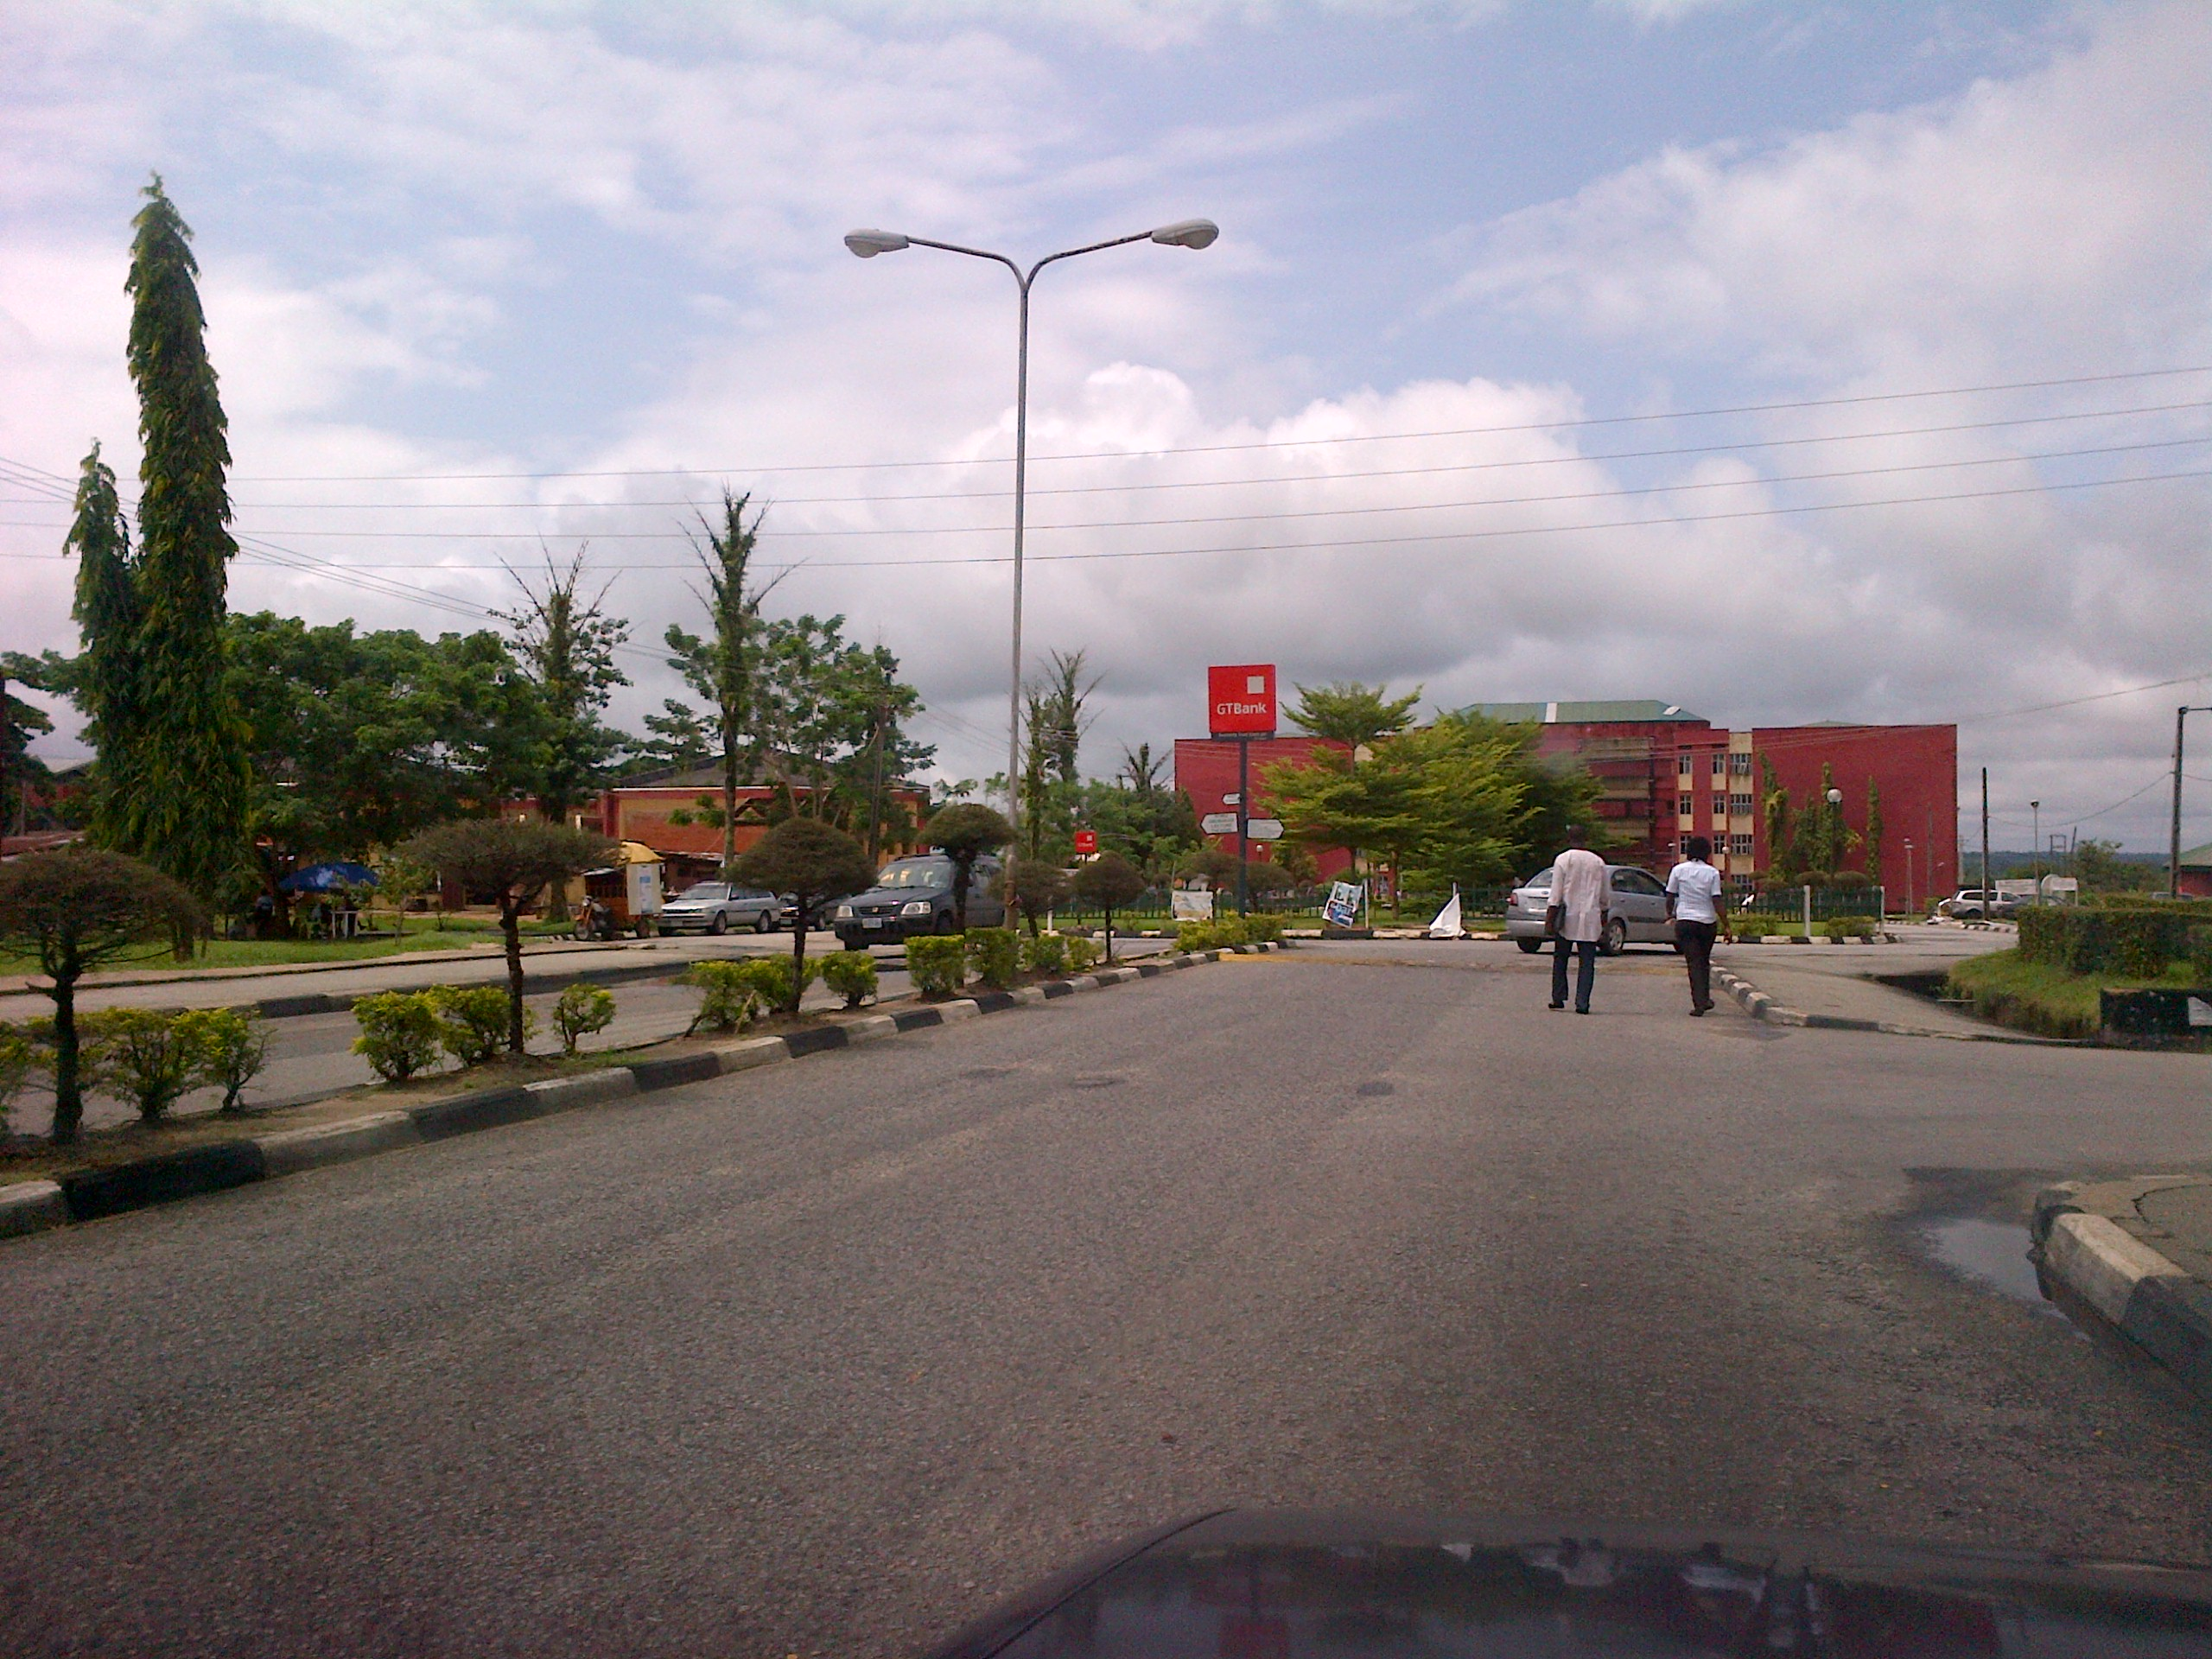 Deserted streets of Unical this morning